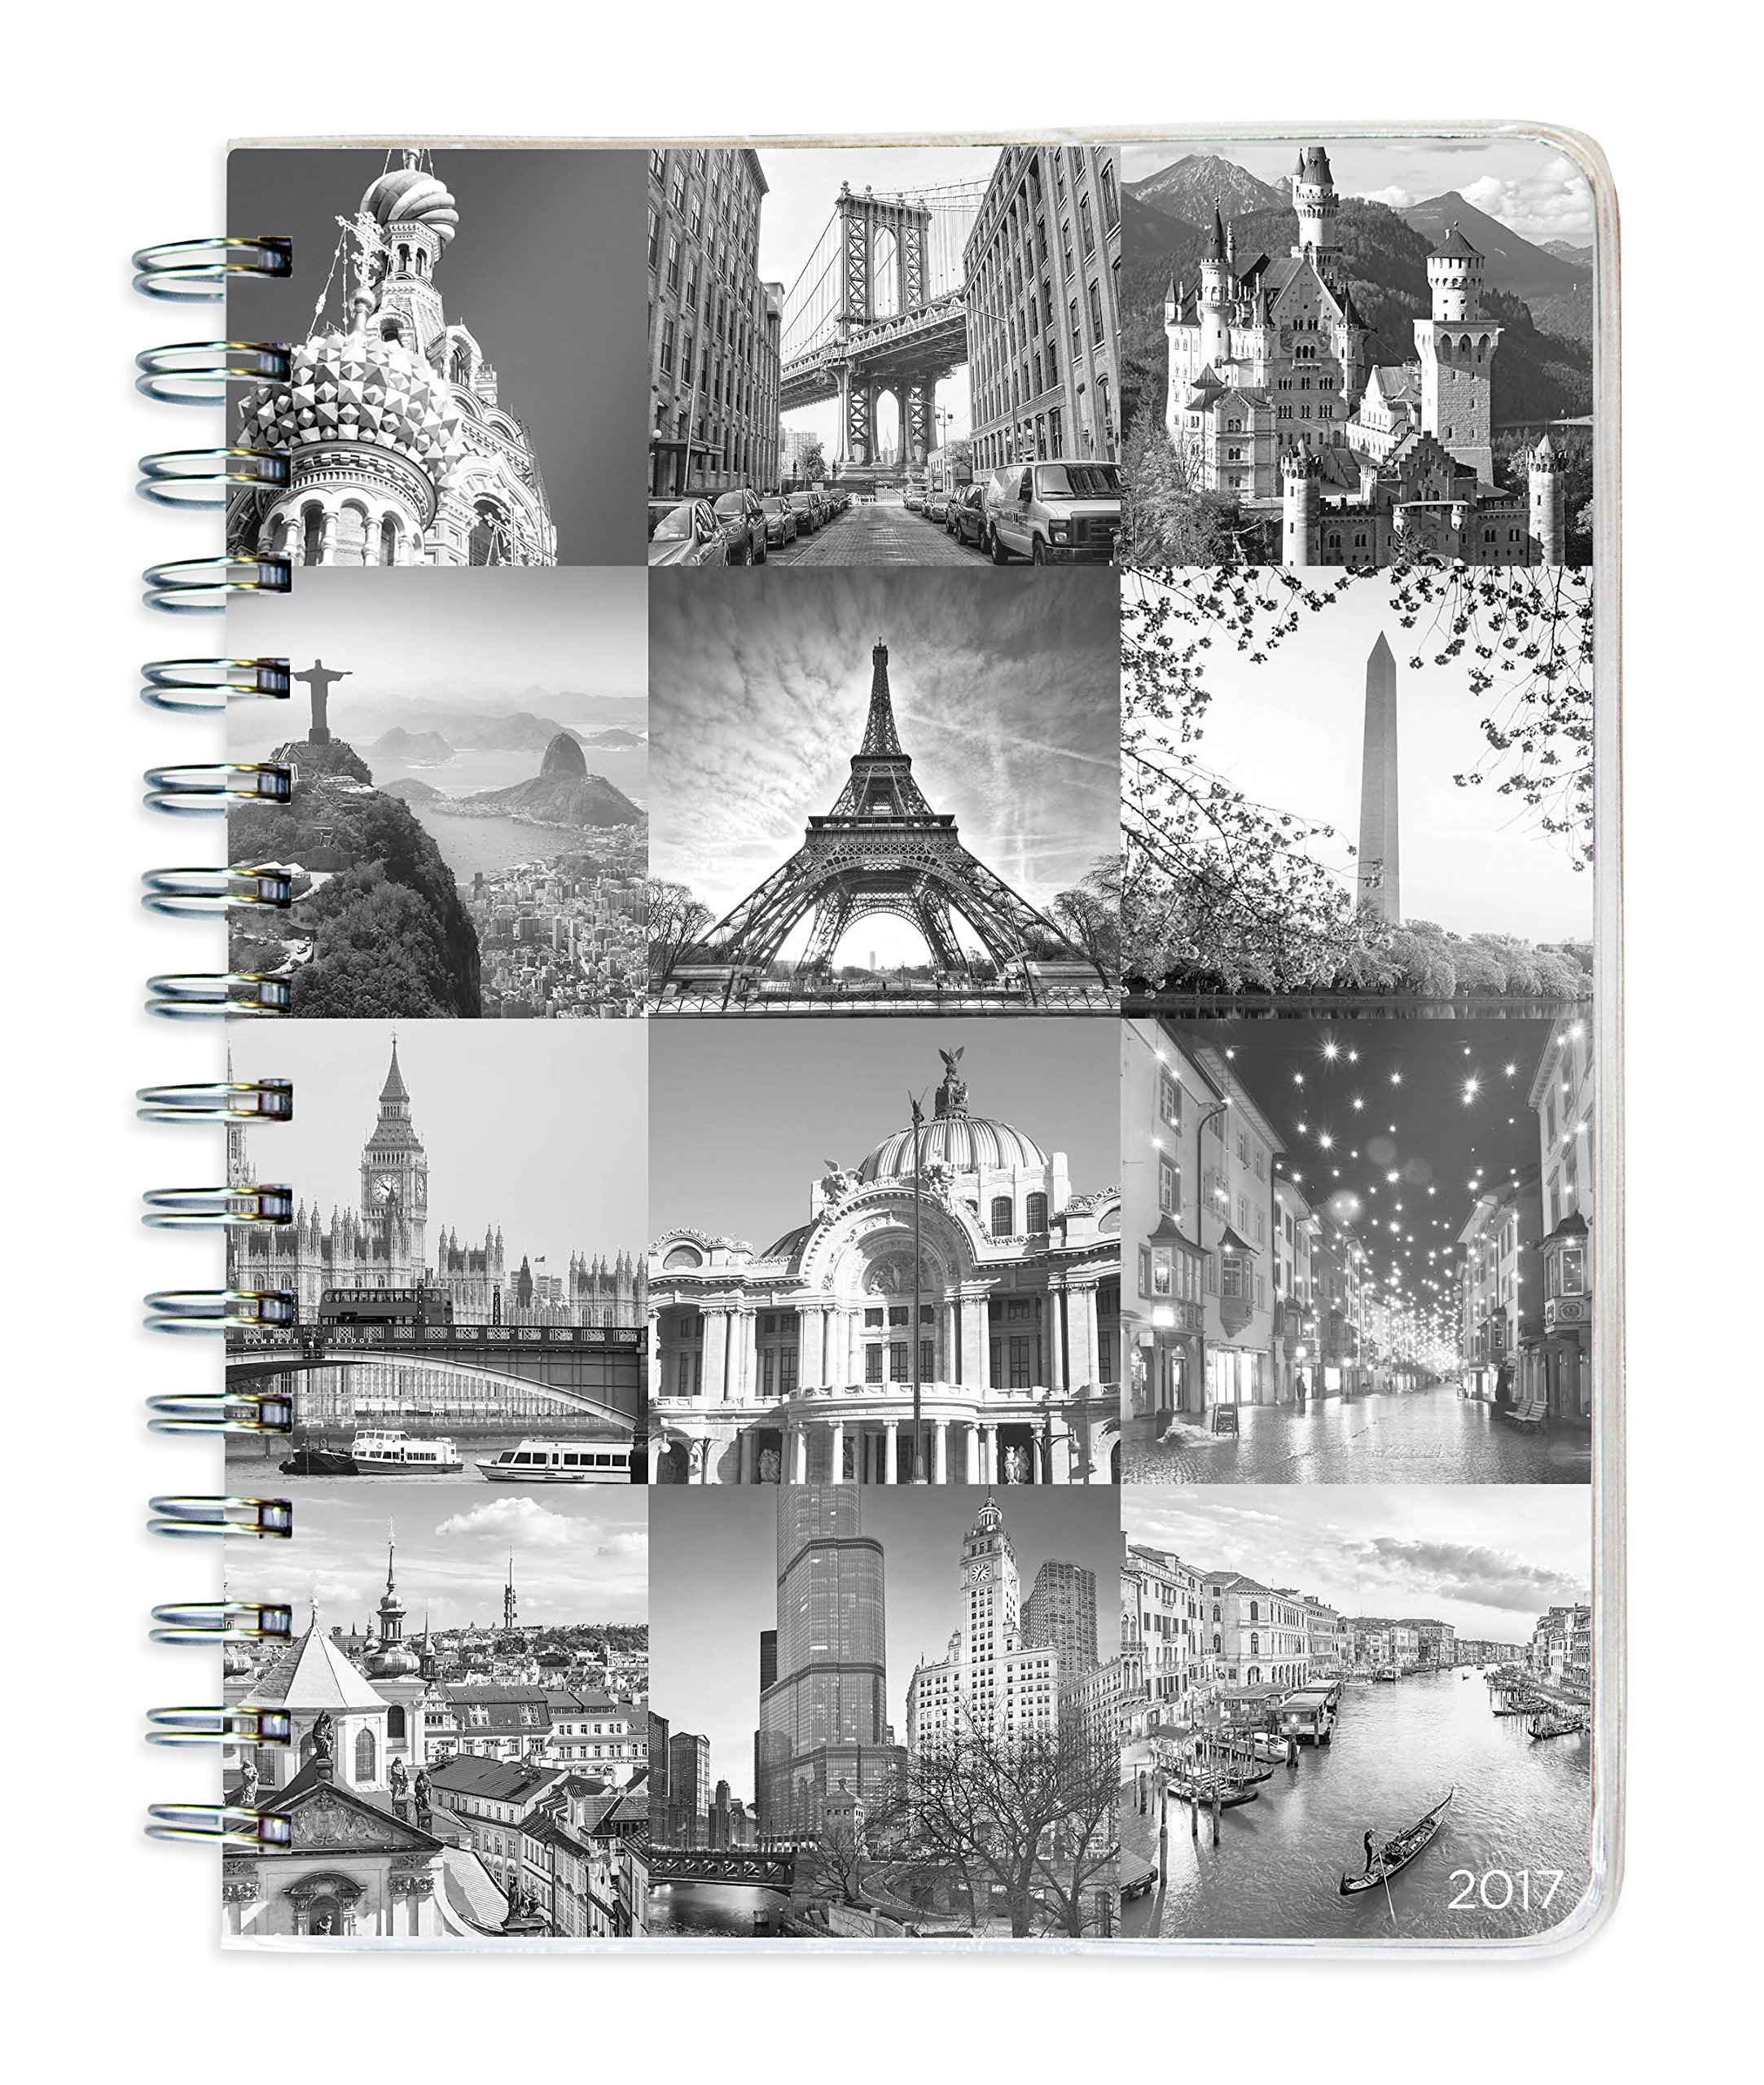 Around World Spiral Engagement Planner product image